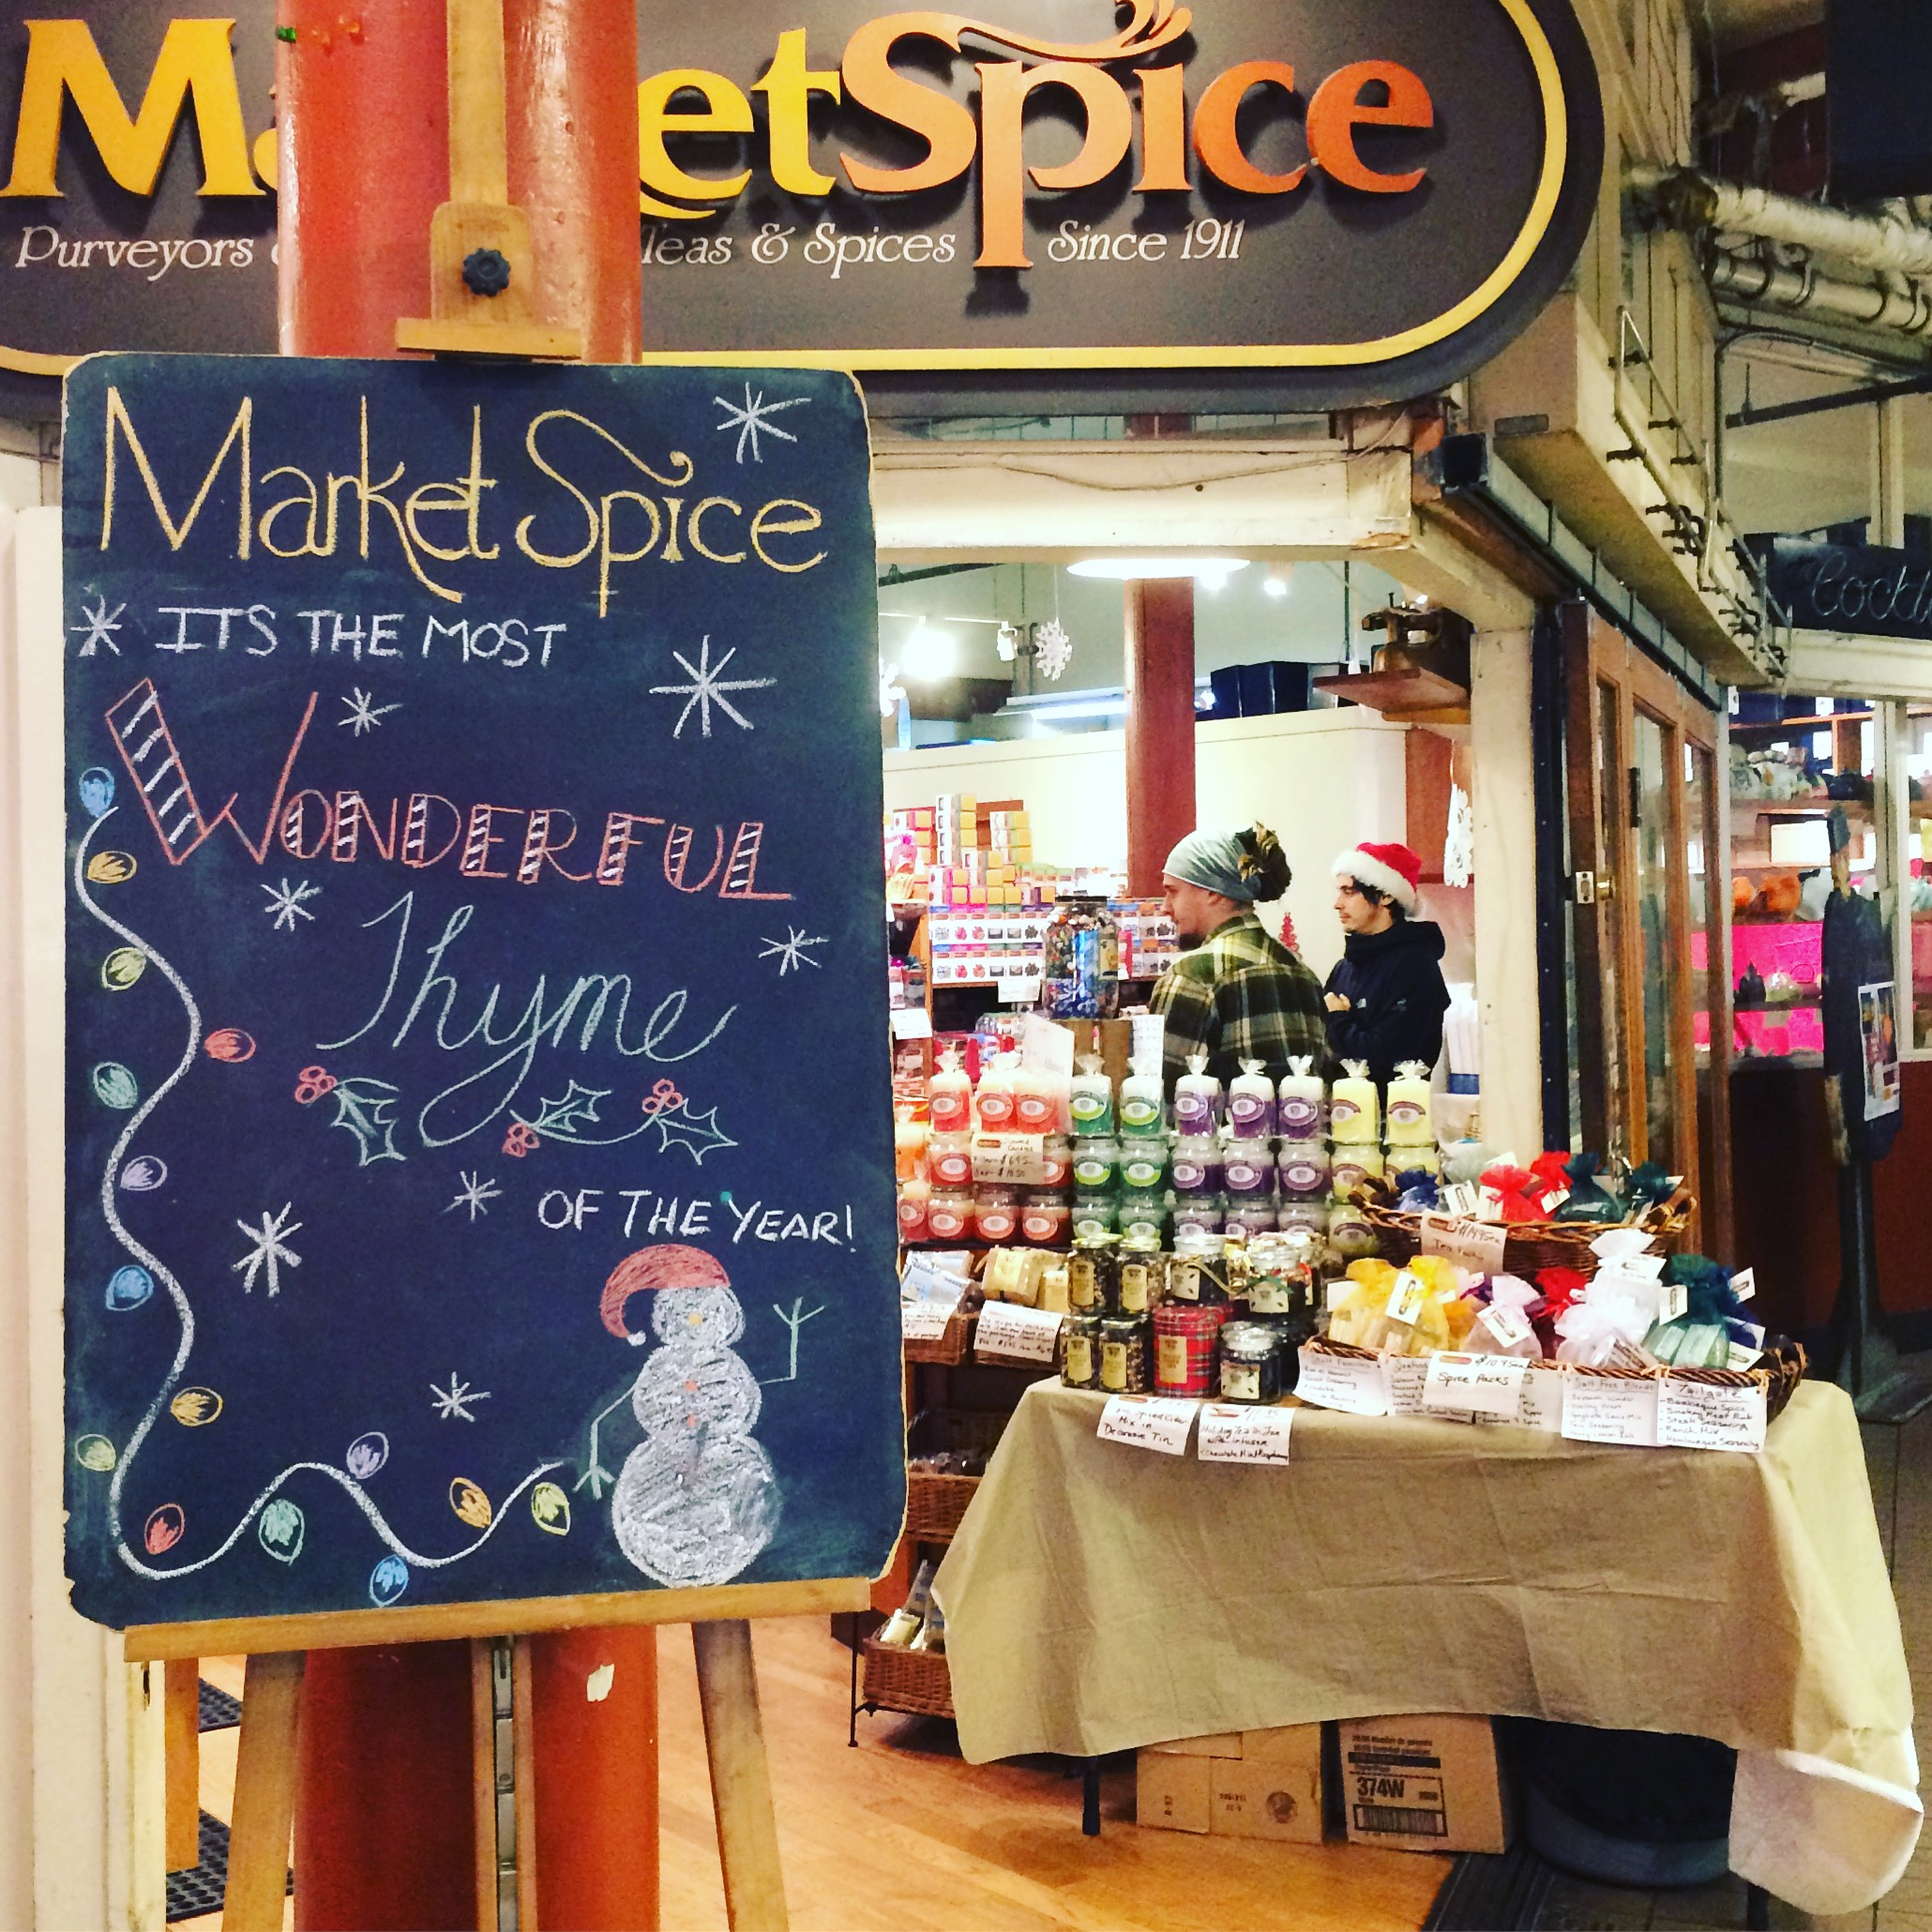 Pike place market herb store with christmas sign.